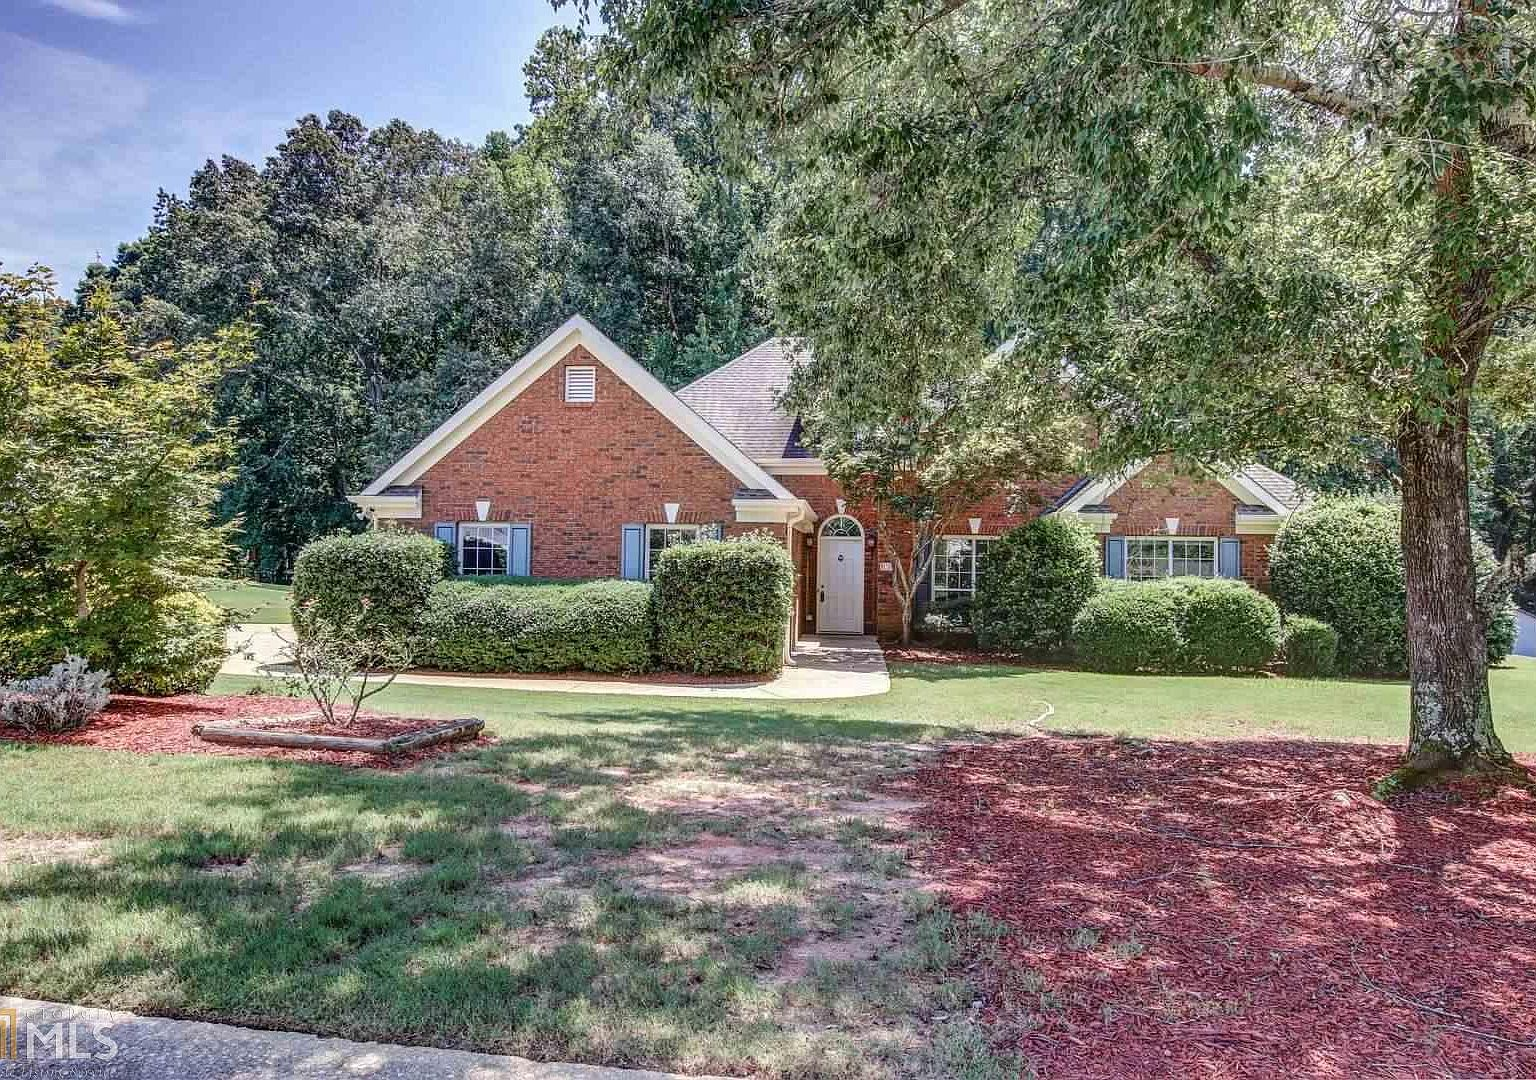 1702 Old Dover Way Sw Conyers Ga 30094 Zillow